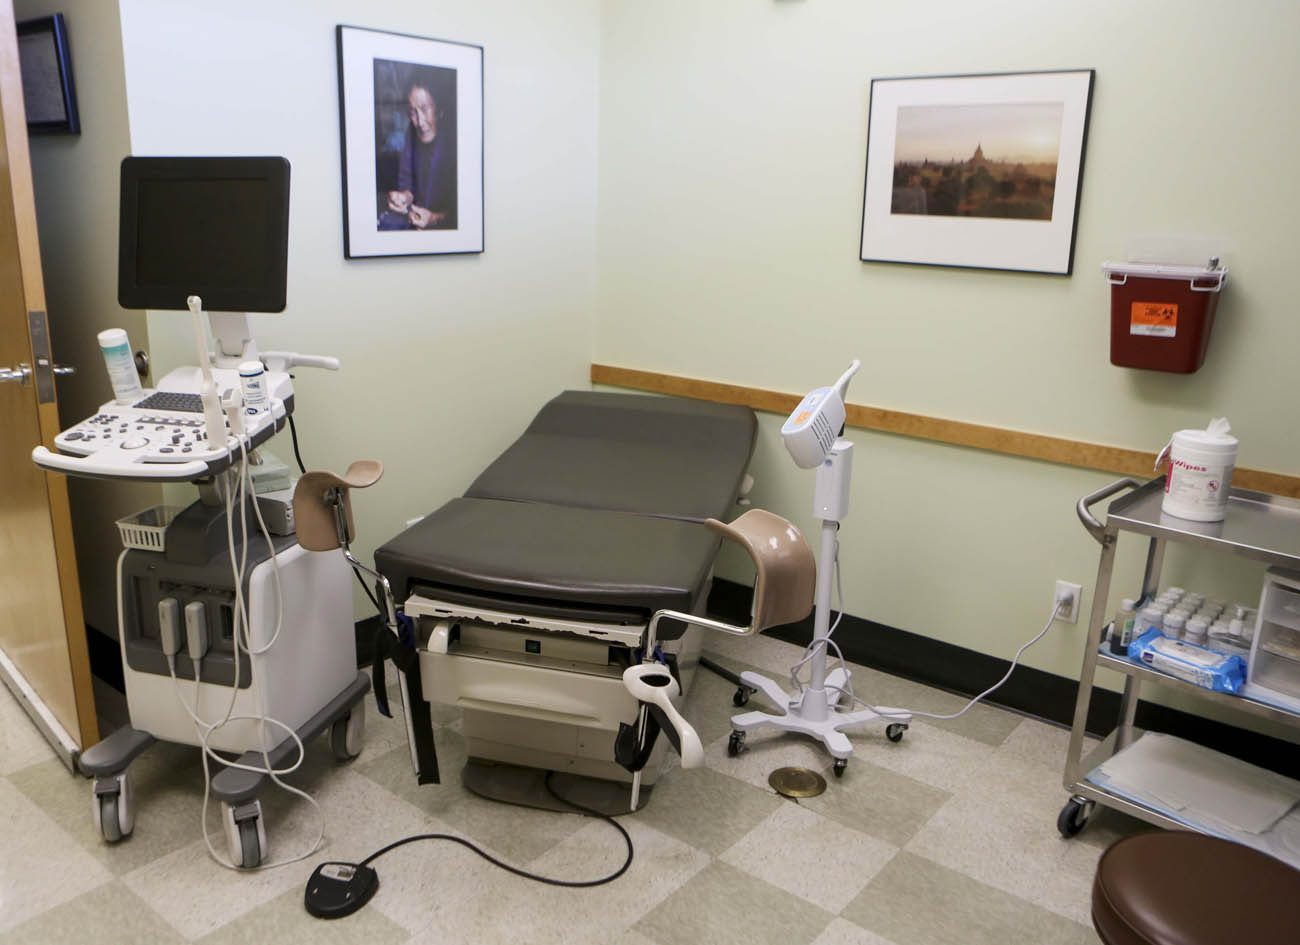 An exam room at the Planned Parenthood South Austin Health Center in Austin, Texas, is shown June 27. In a 5-3 vote that day, the U.S. Supreme Court struck down restrictions on Texas abortion clinics that required them to comply with standards of ambulatory surgical centers and required their doctors to have admitting privileges at local hospitals. (CNS photo/Ilana Panich-Linsman, Reuters)